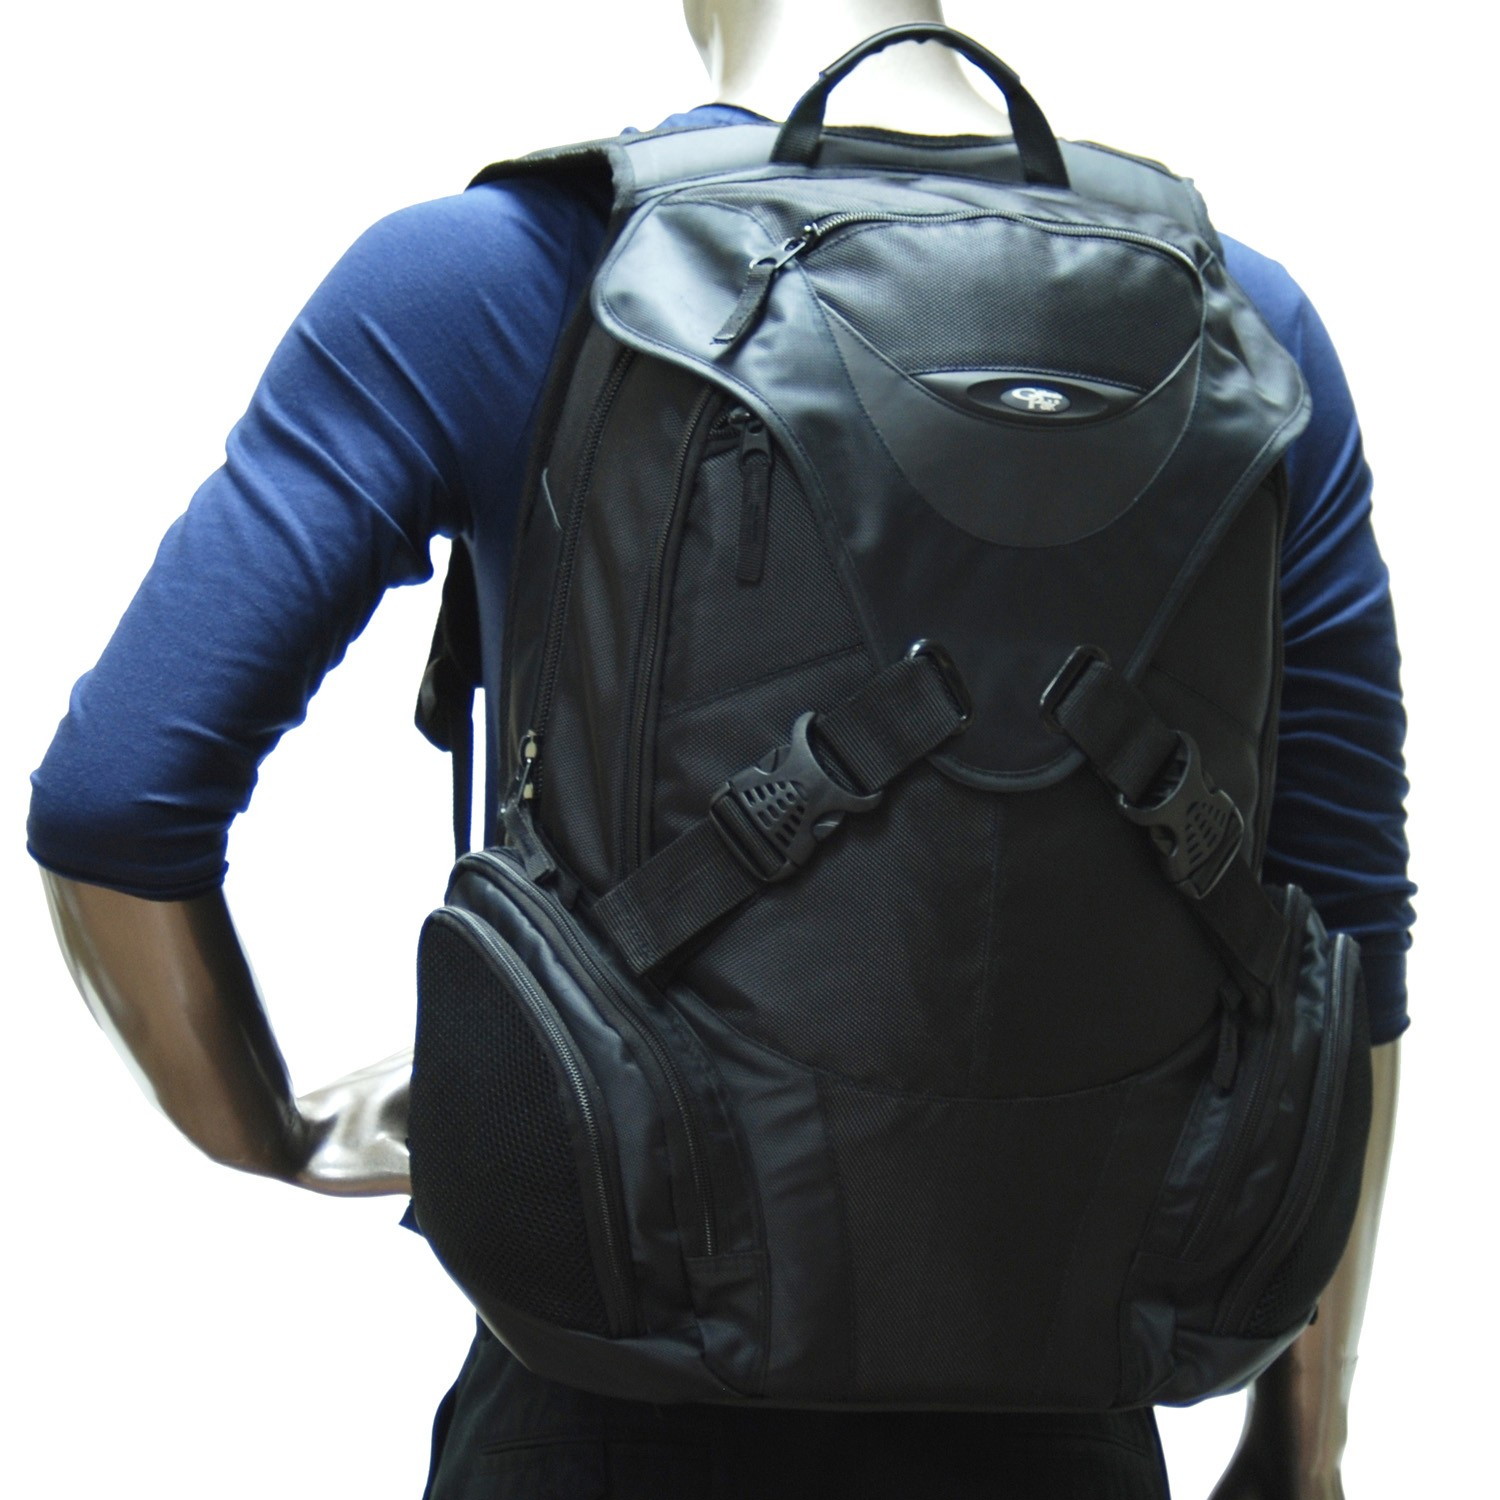 20 Inch Laptop Backpack 3mft4I0X